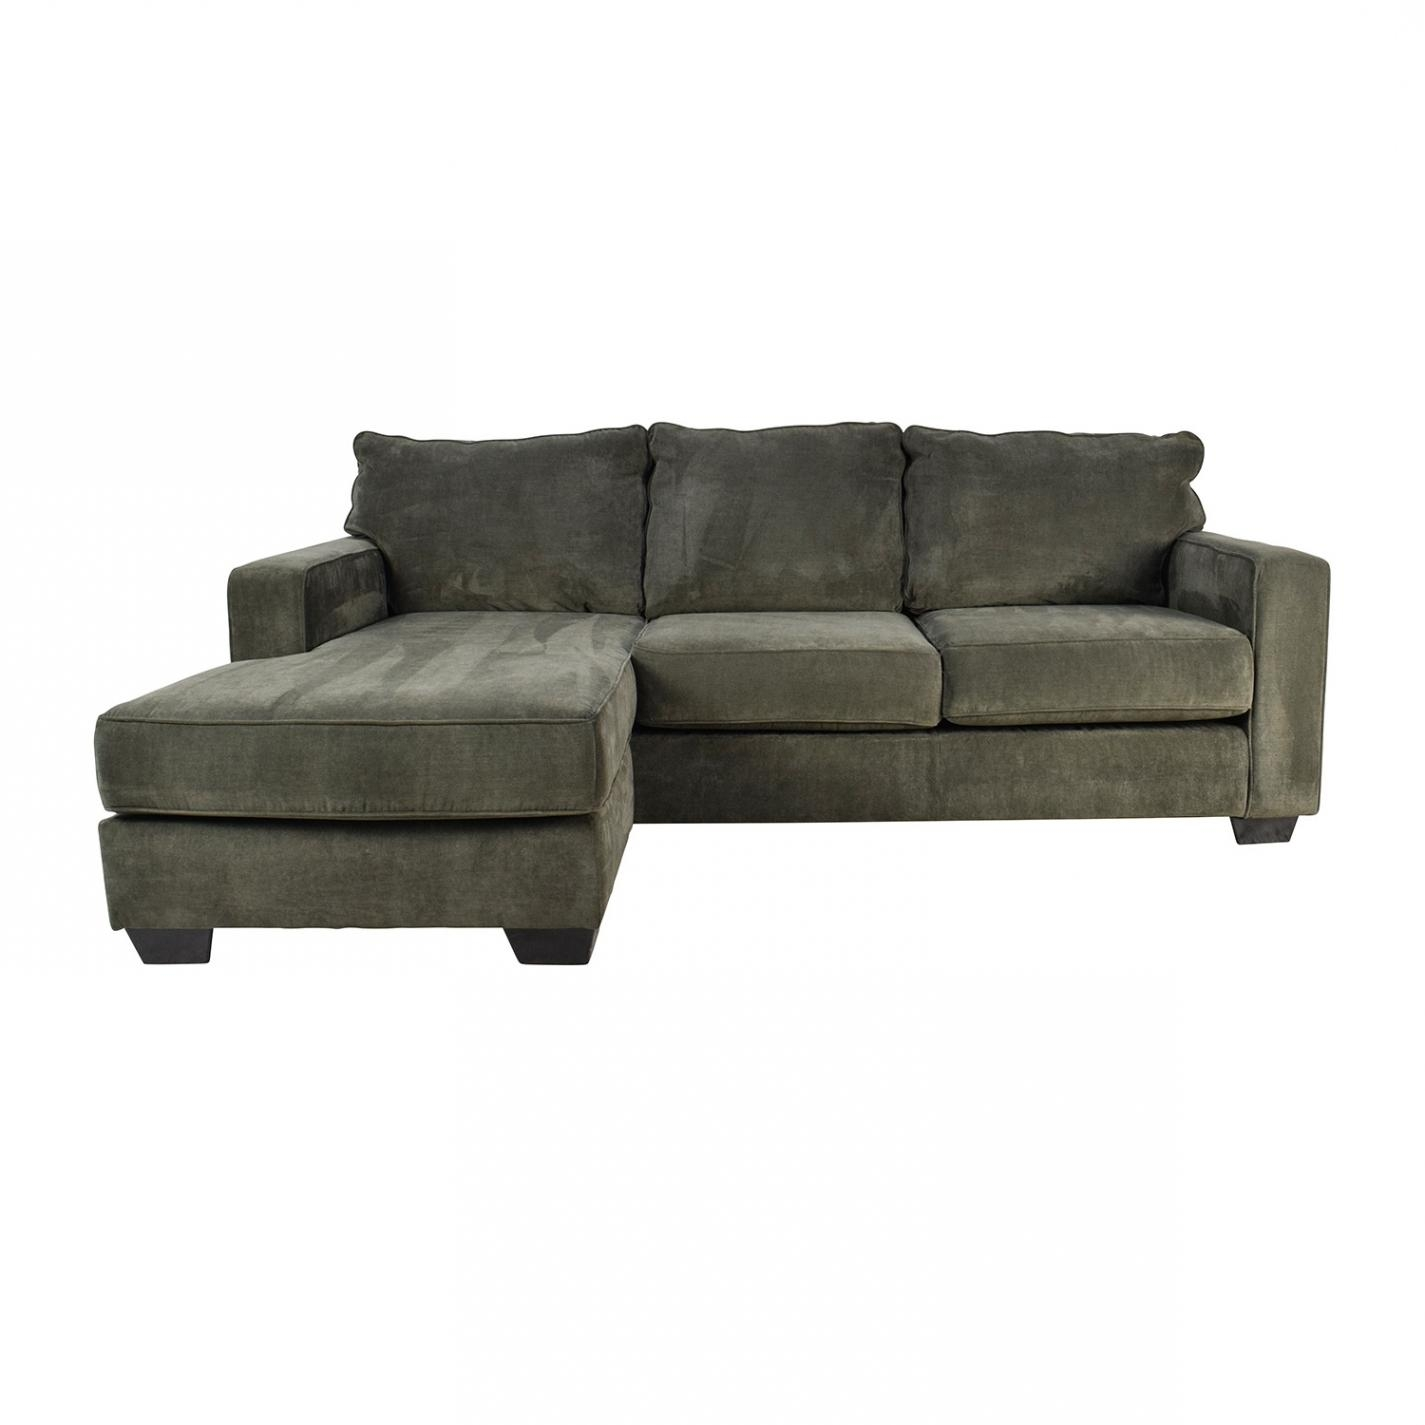 Euro sofas mega oferta euro sof s 17 10 you thesofa for Couch 700 euro